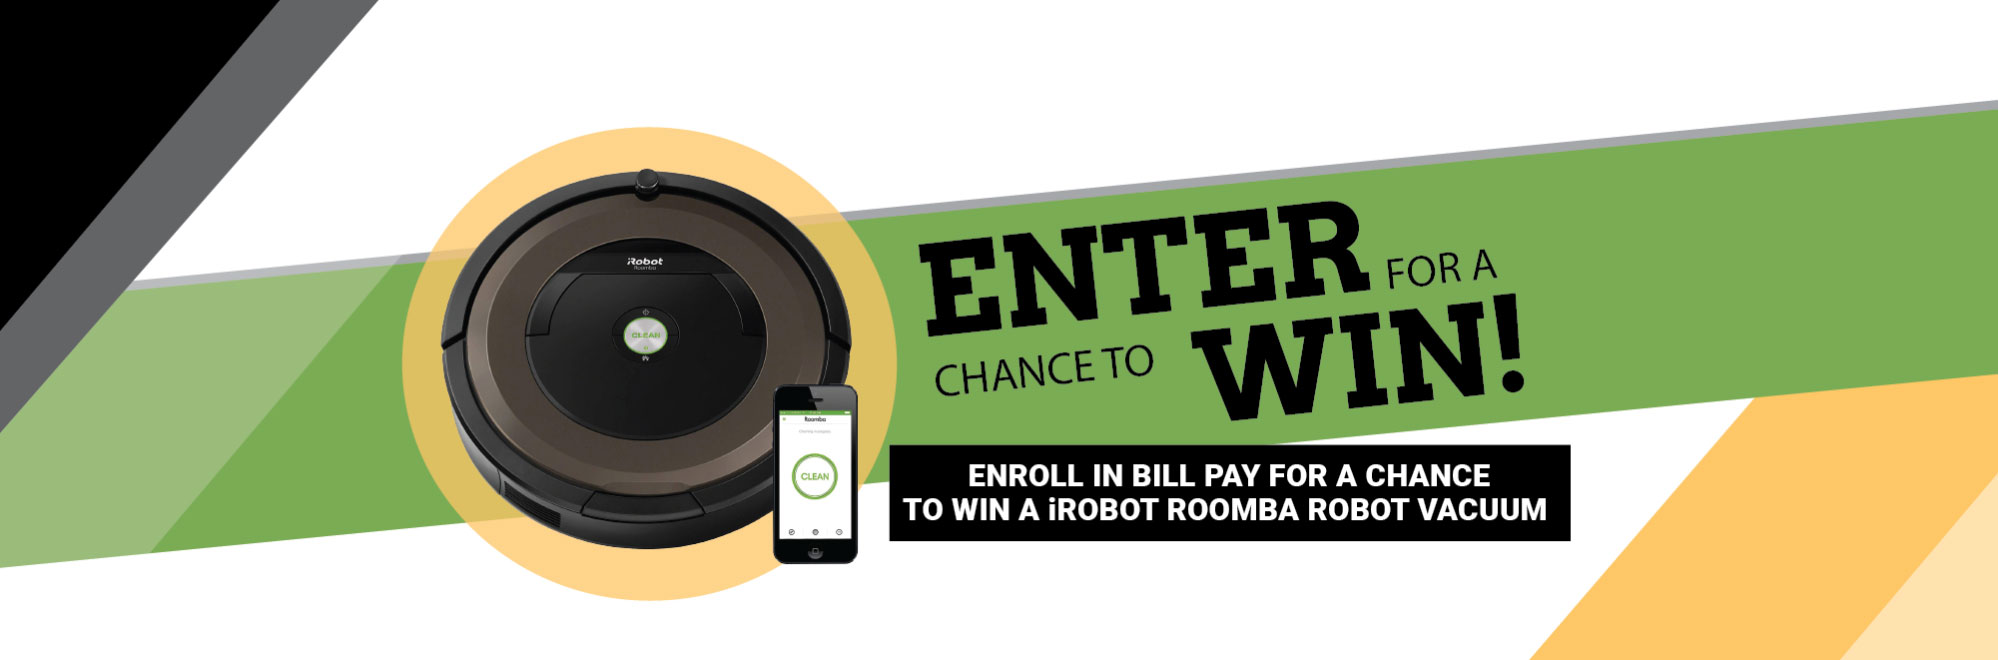 Enter for a chance to win by enrolling in Bill Pay with SACFCU.